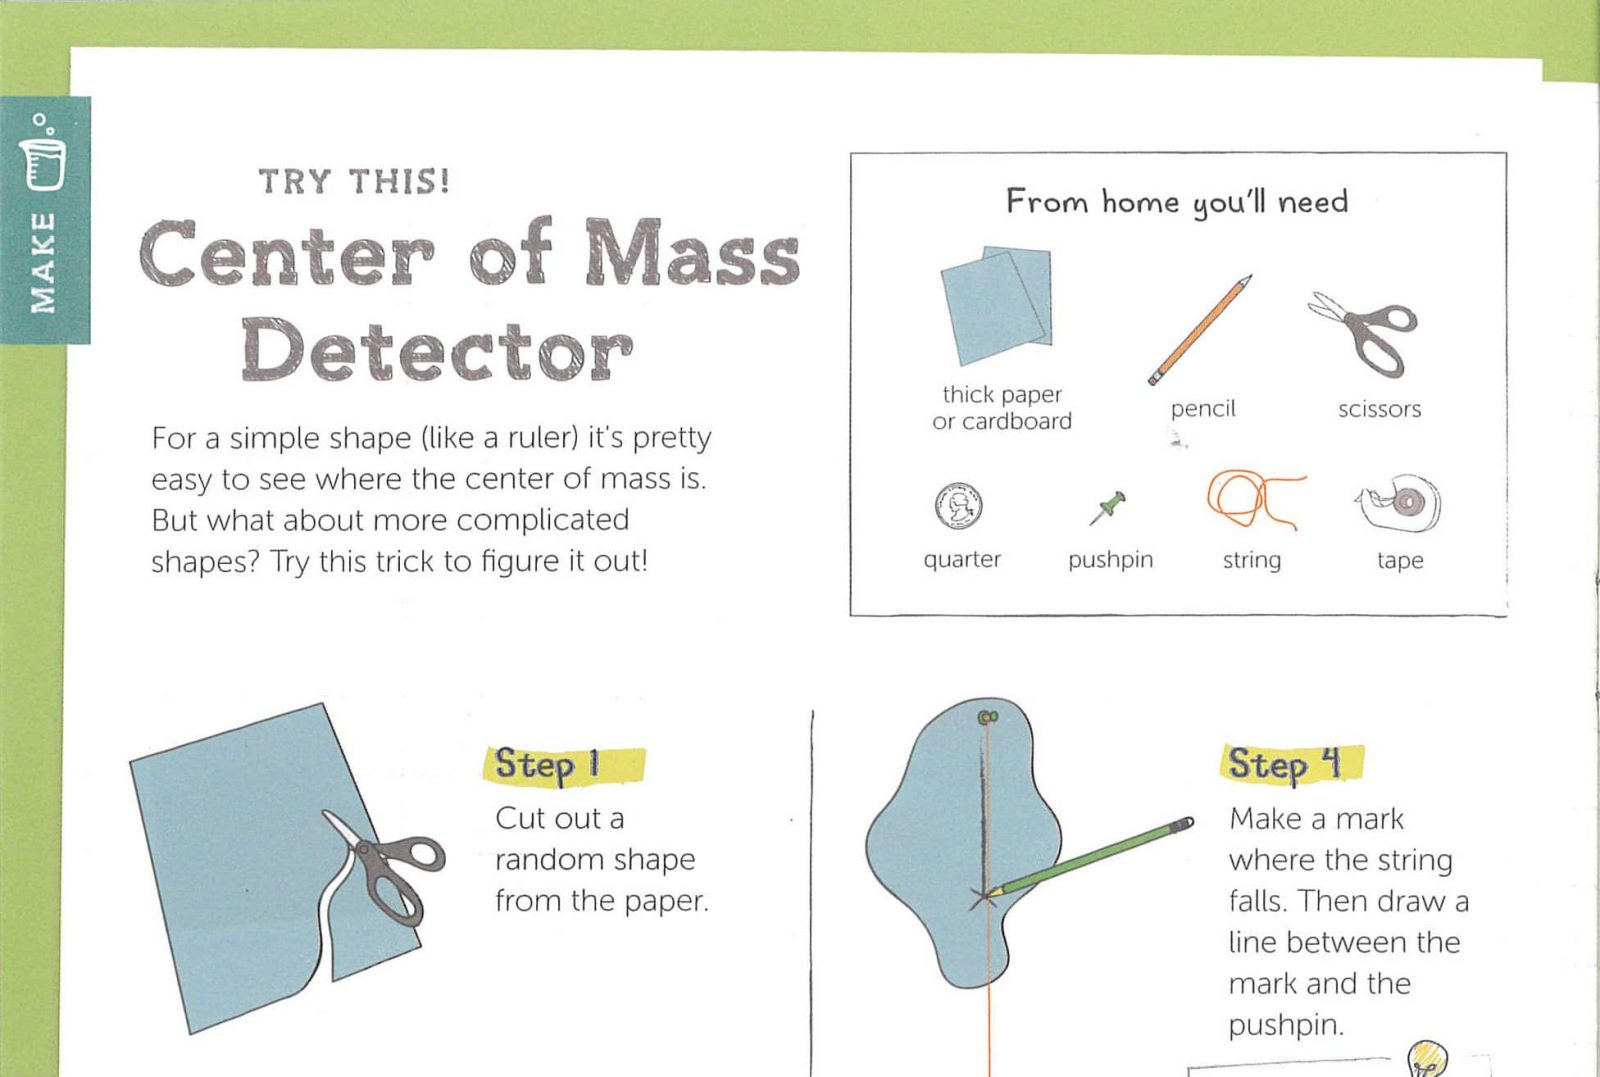 Center of Mass Detector example instructions - Tinker Crate